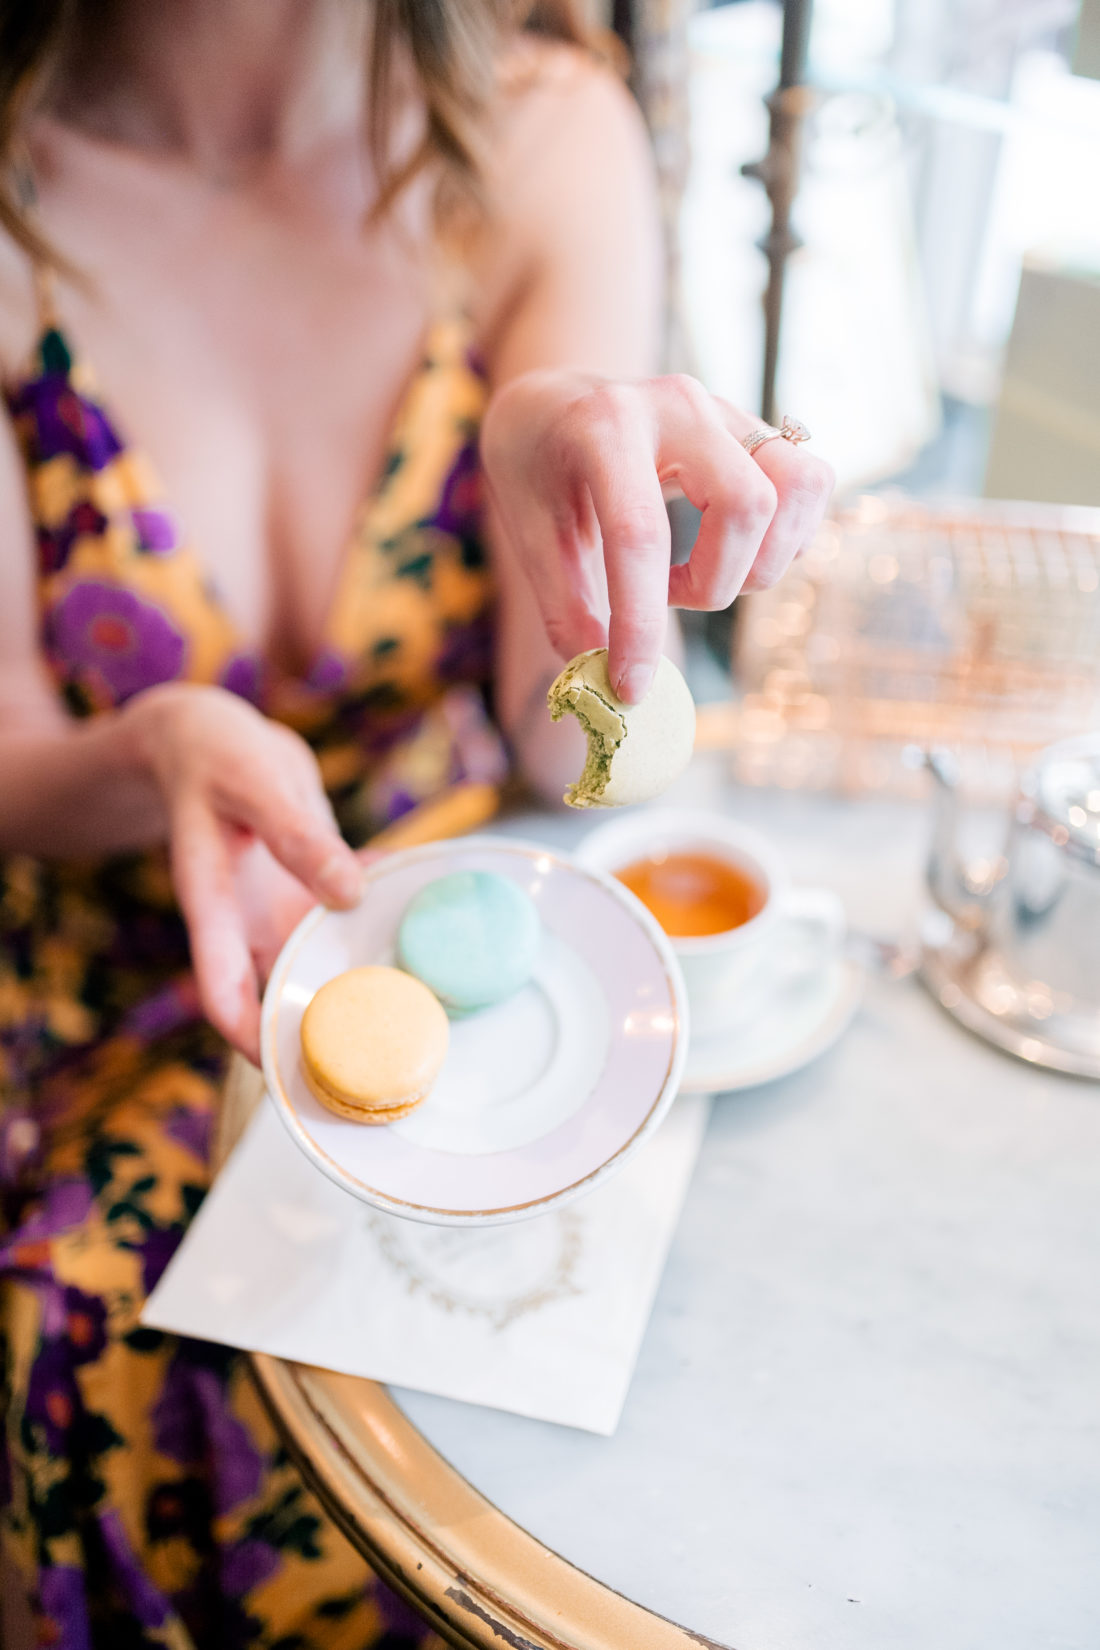 Eva Amurri Martino holds a plate of instagramable food in NYC from Ladurée